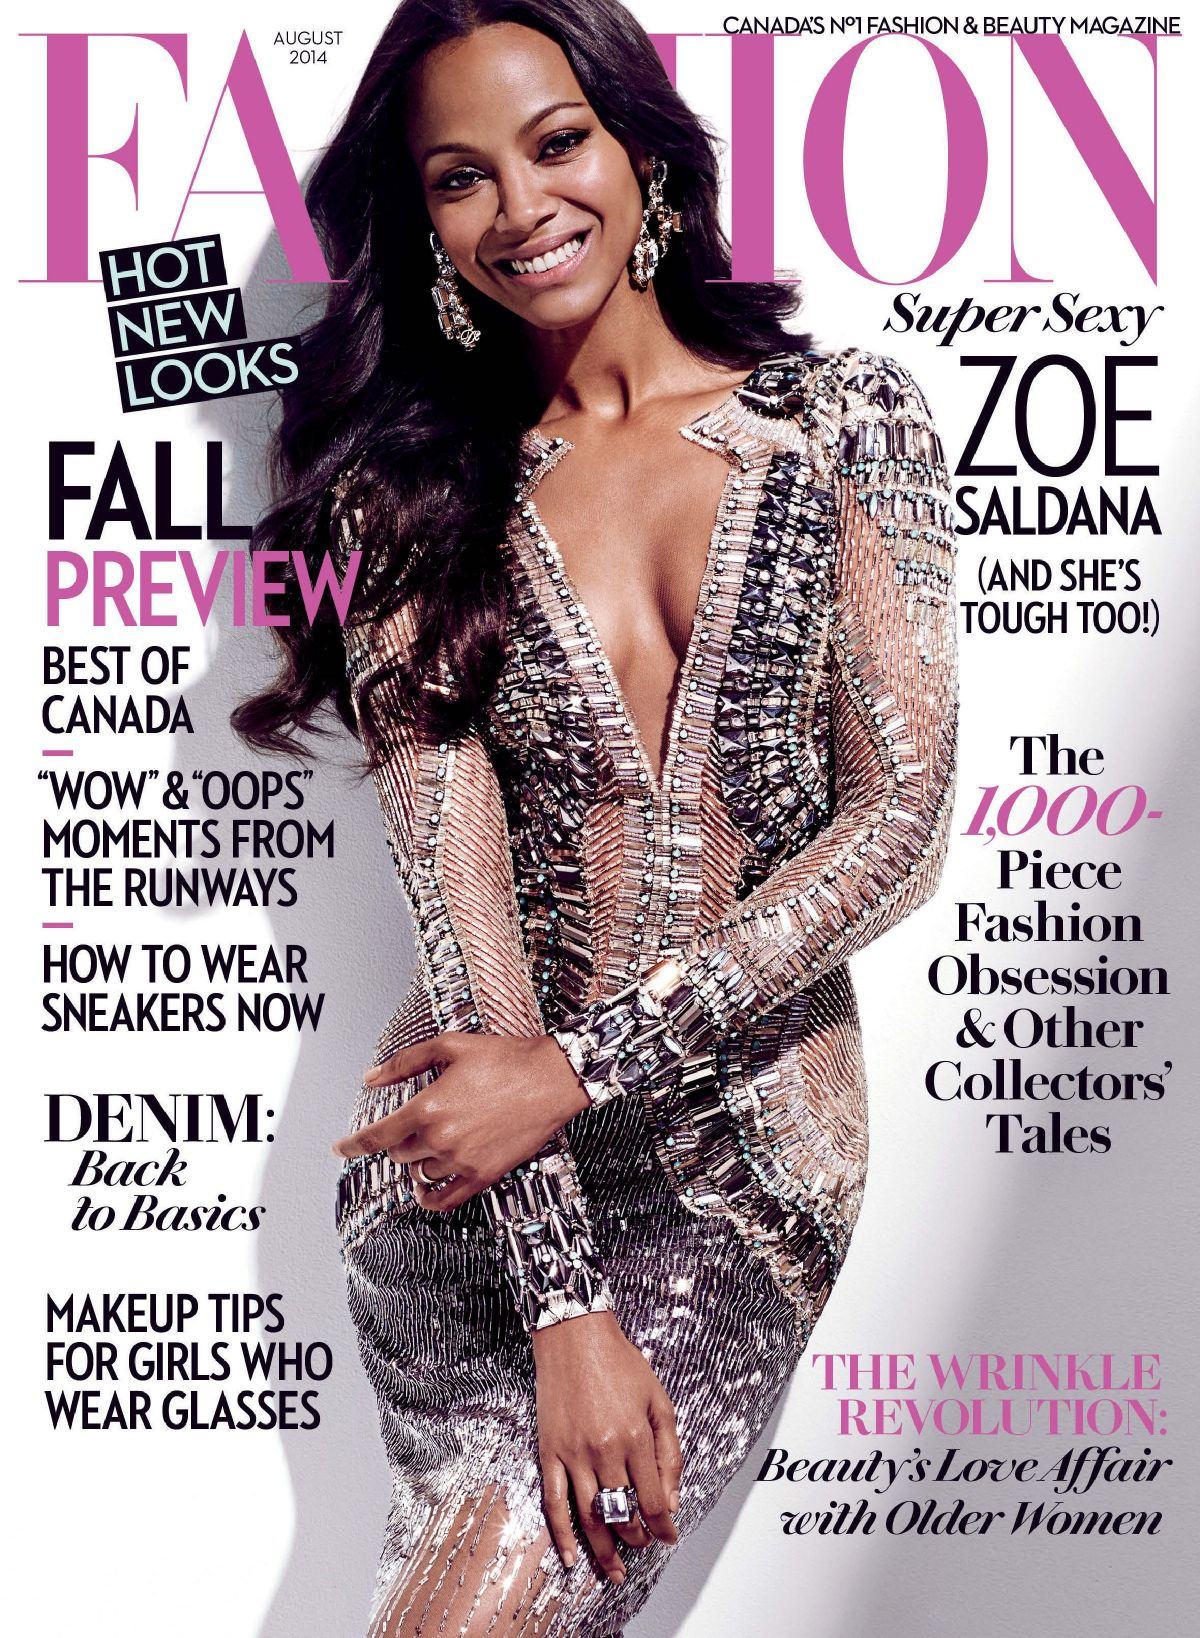 ZOE SALDANA on the Cover of Fashion Magazine, August 2014 Issue